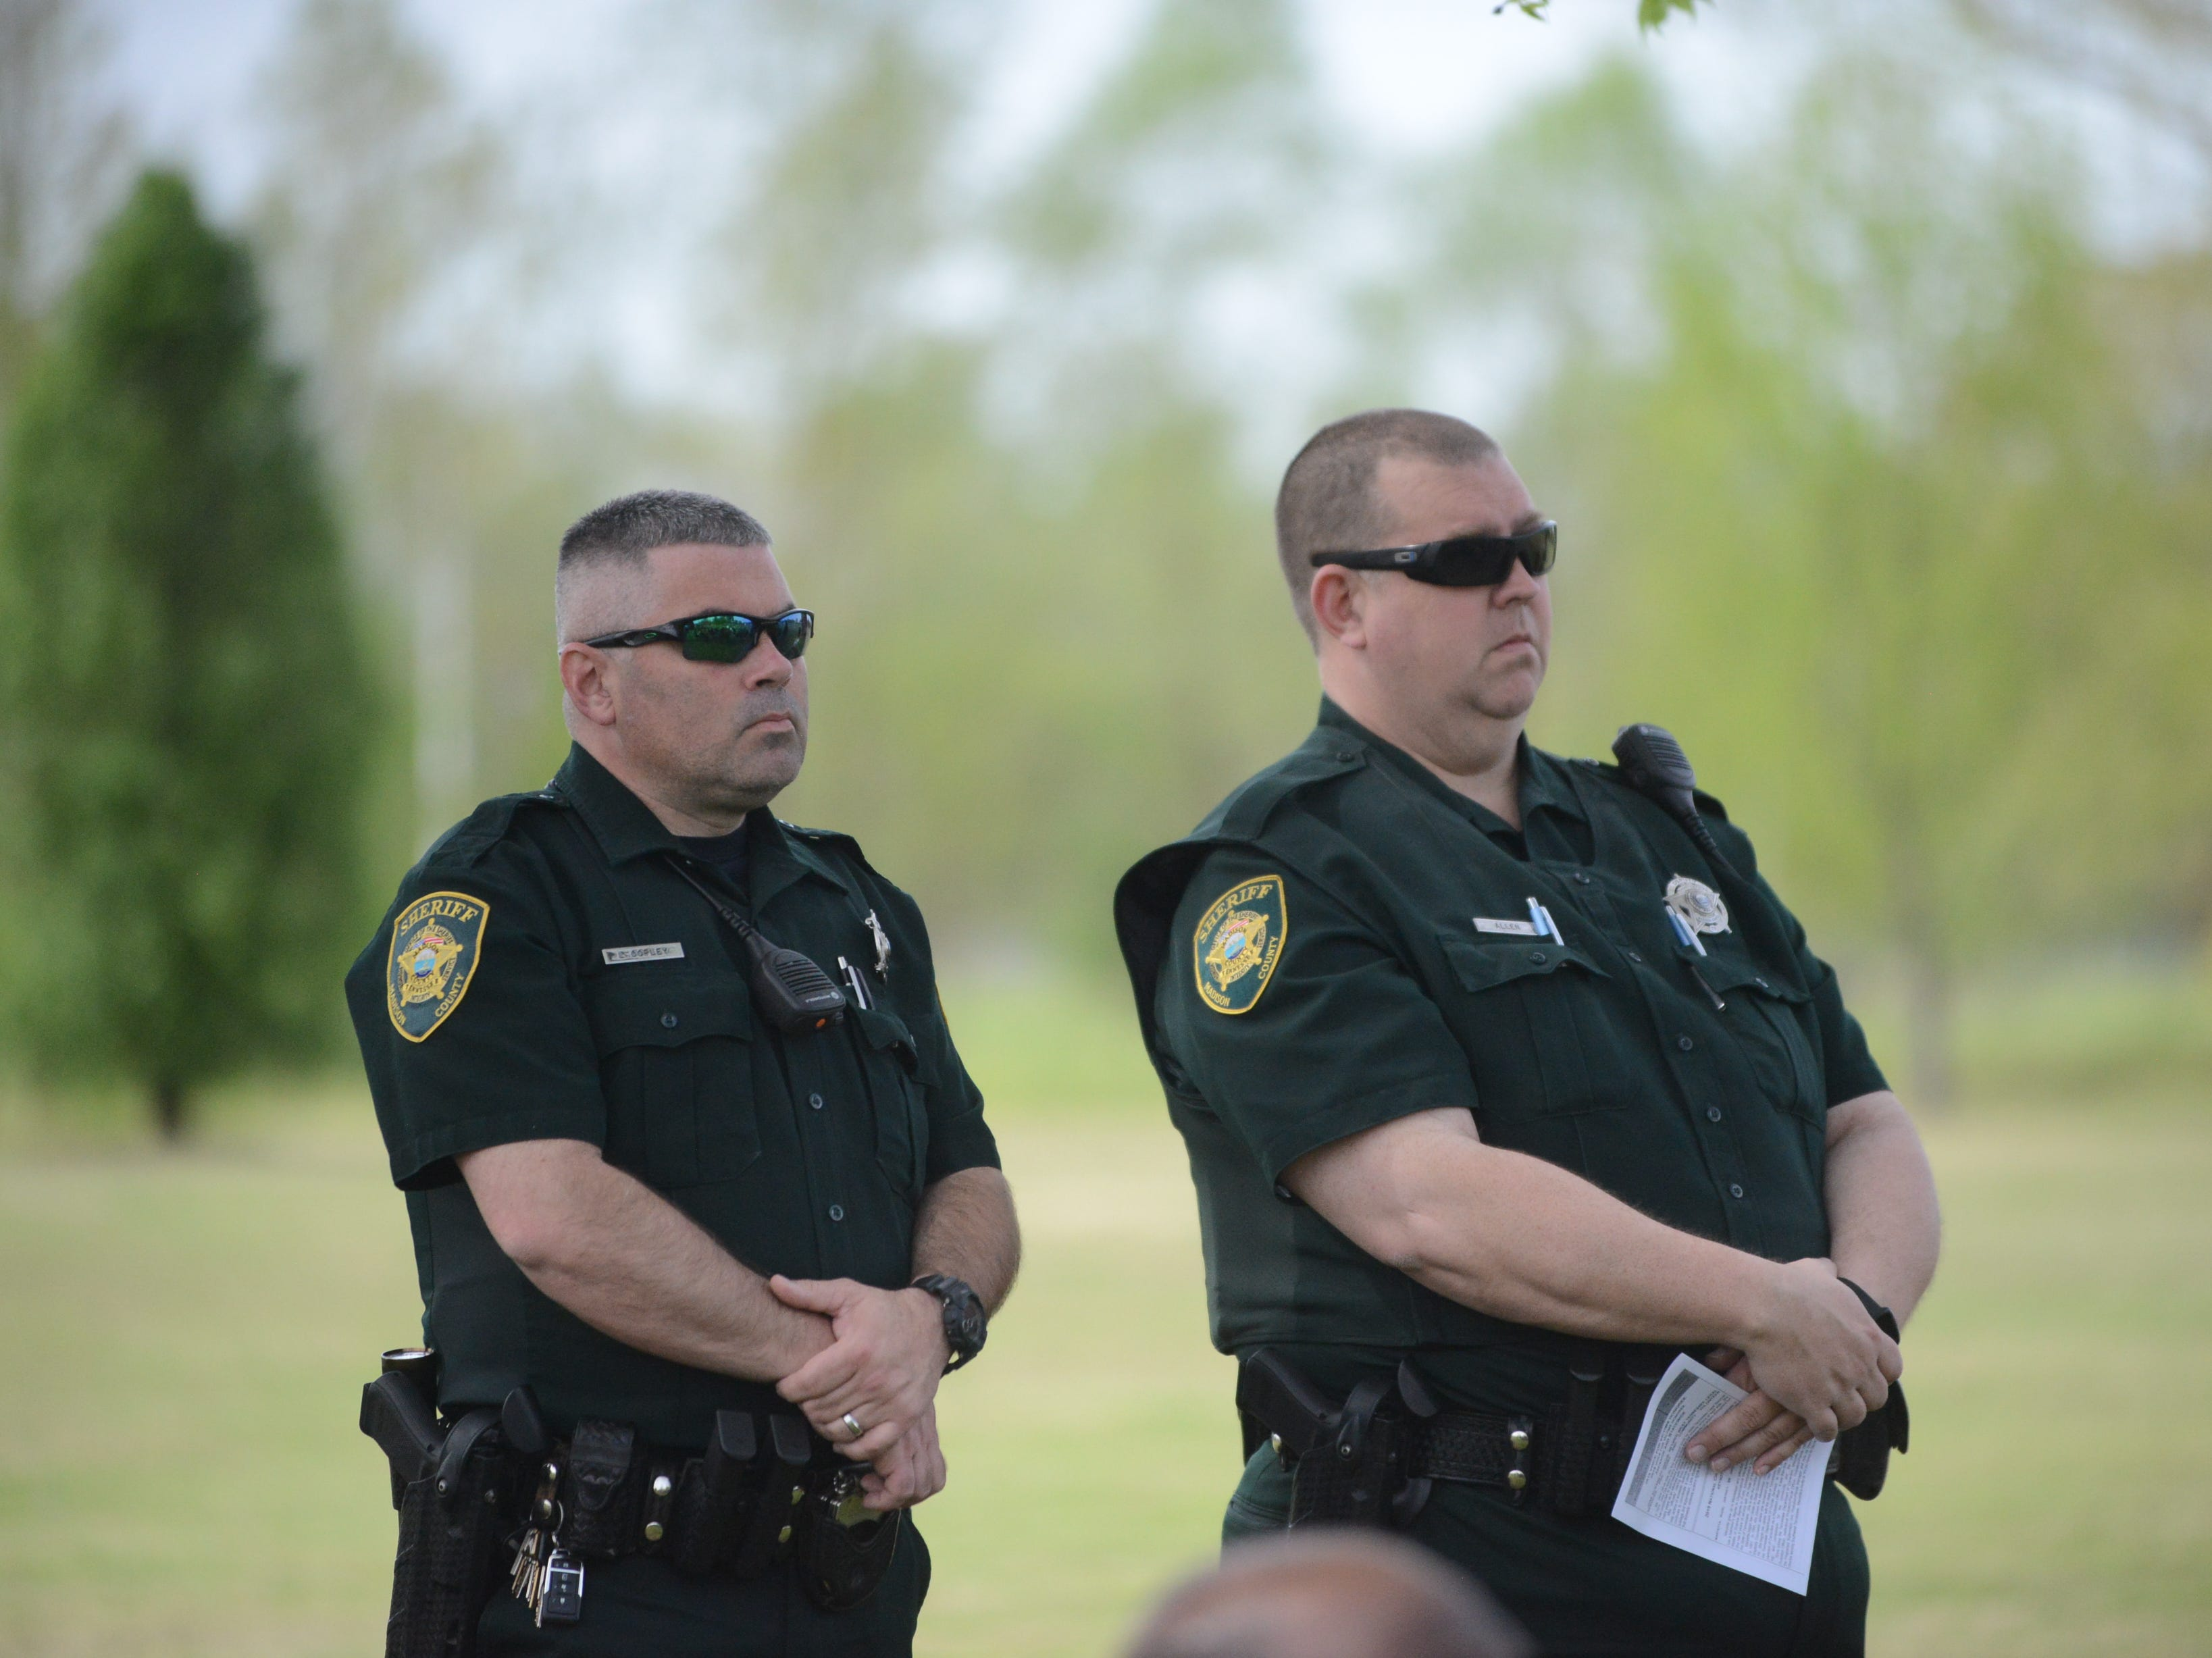 Two Madison County Sheriff deputies watch the ceremony unfold.